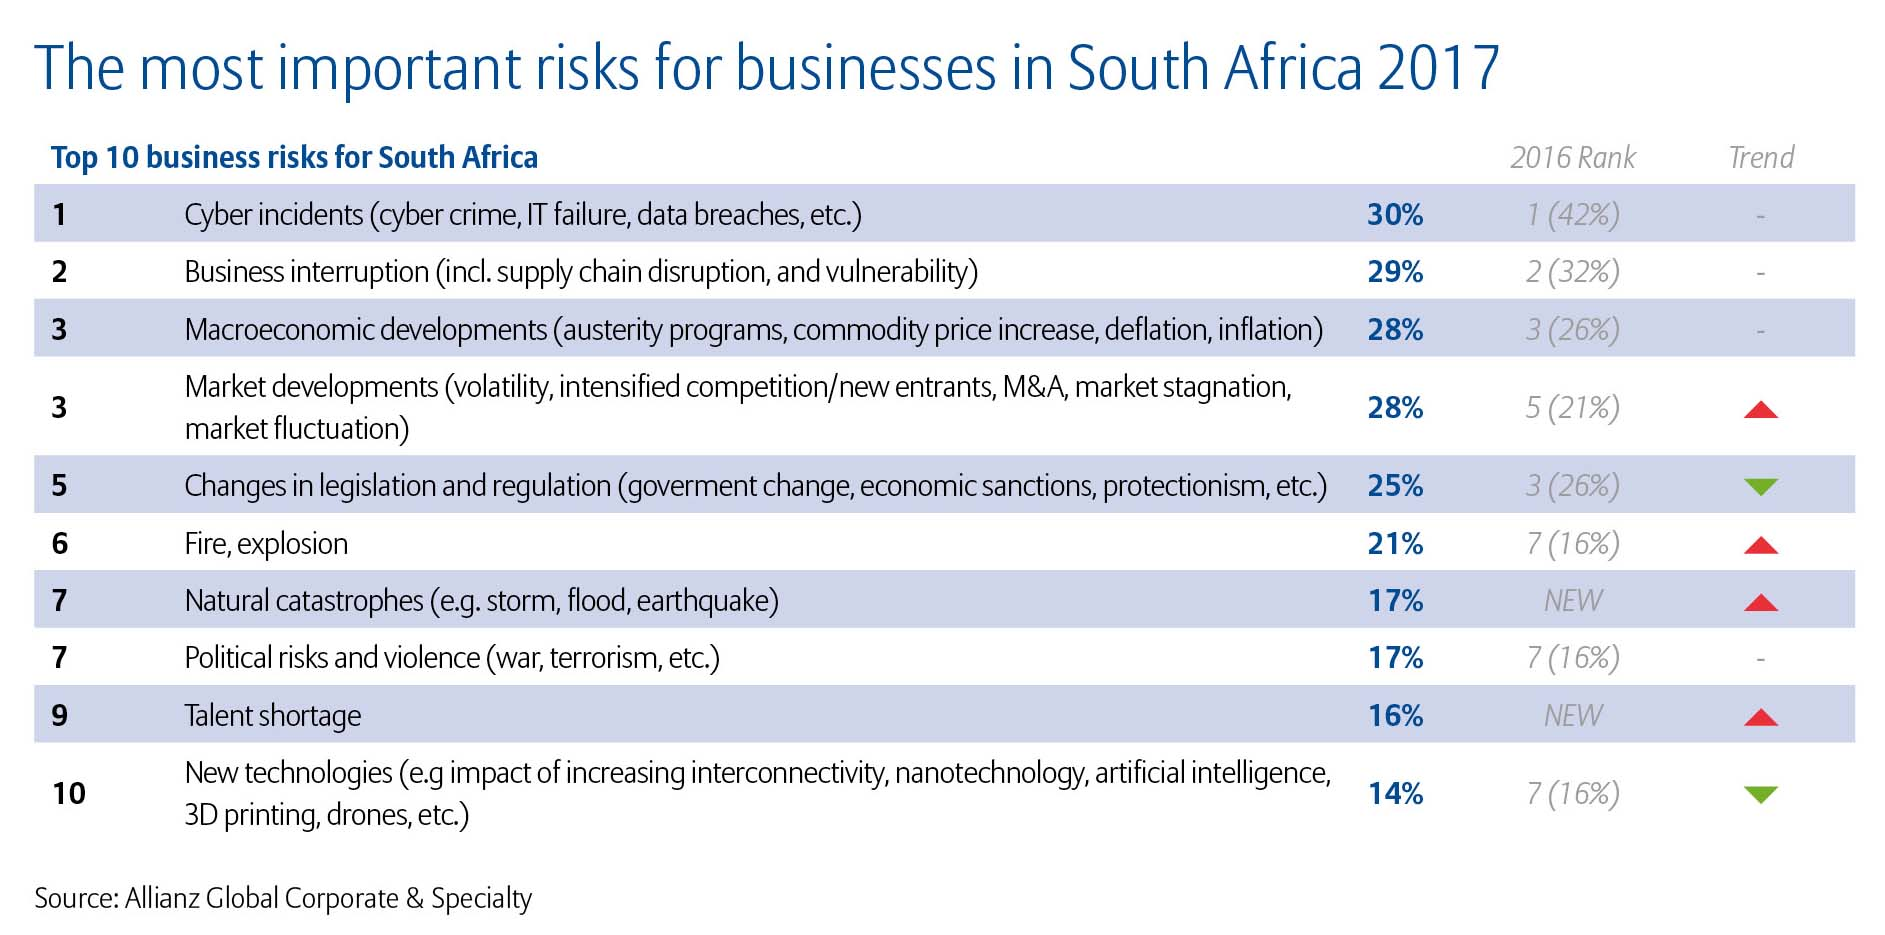 Allianz Risk Barometer 2017 Top 10 Business Risks South Africa (2)